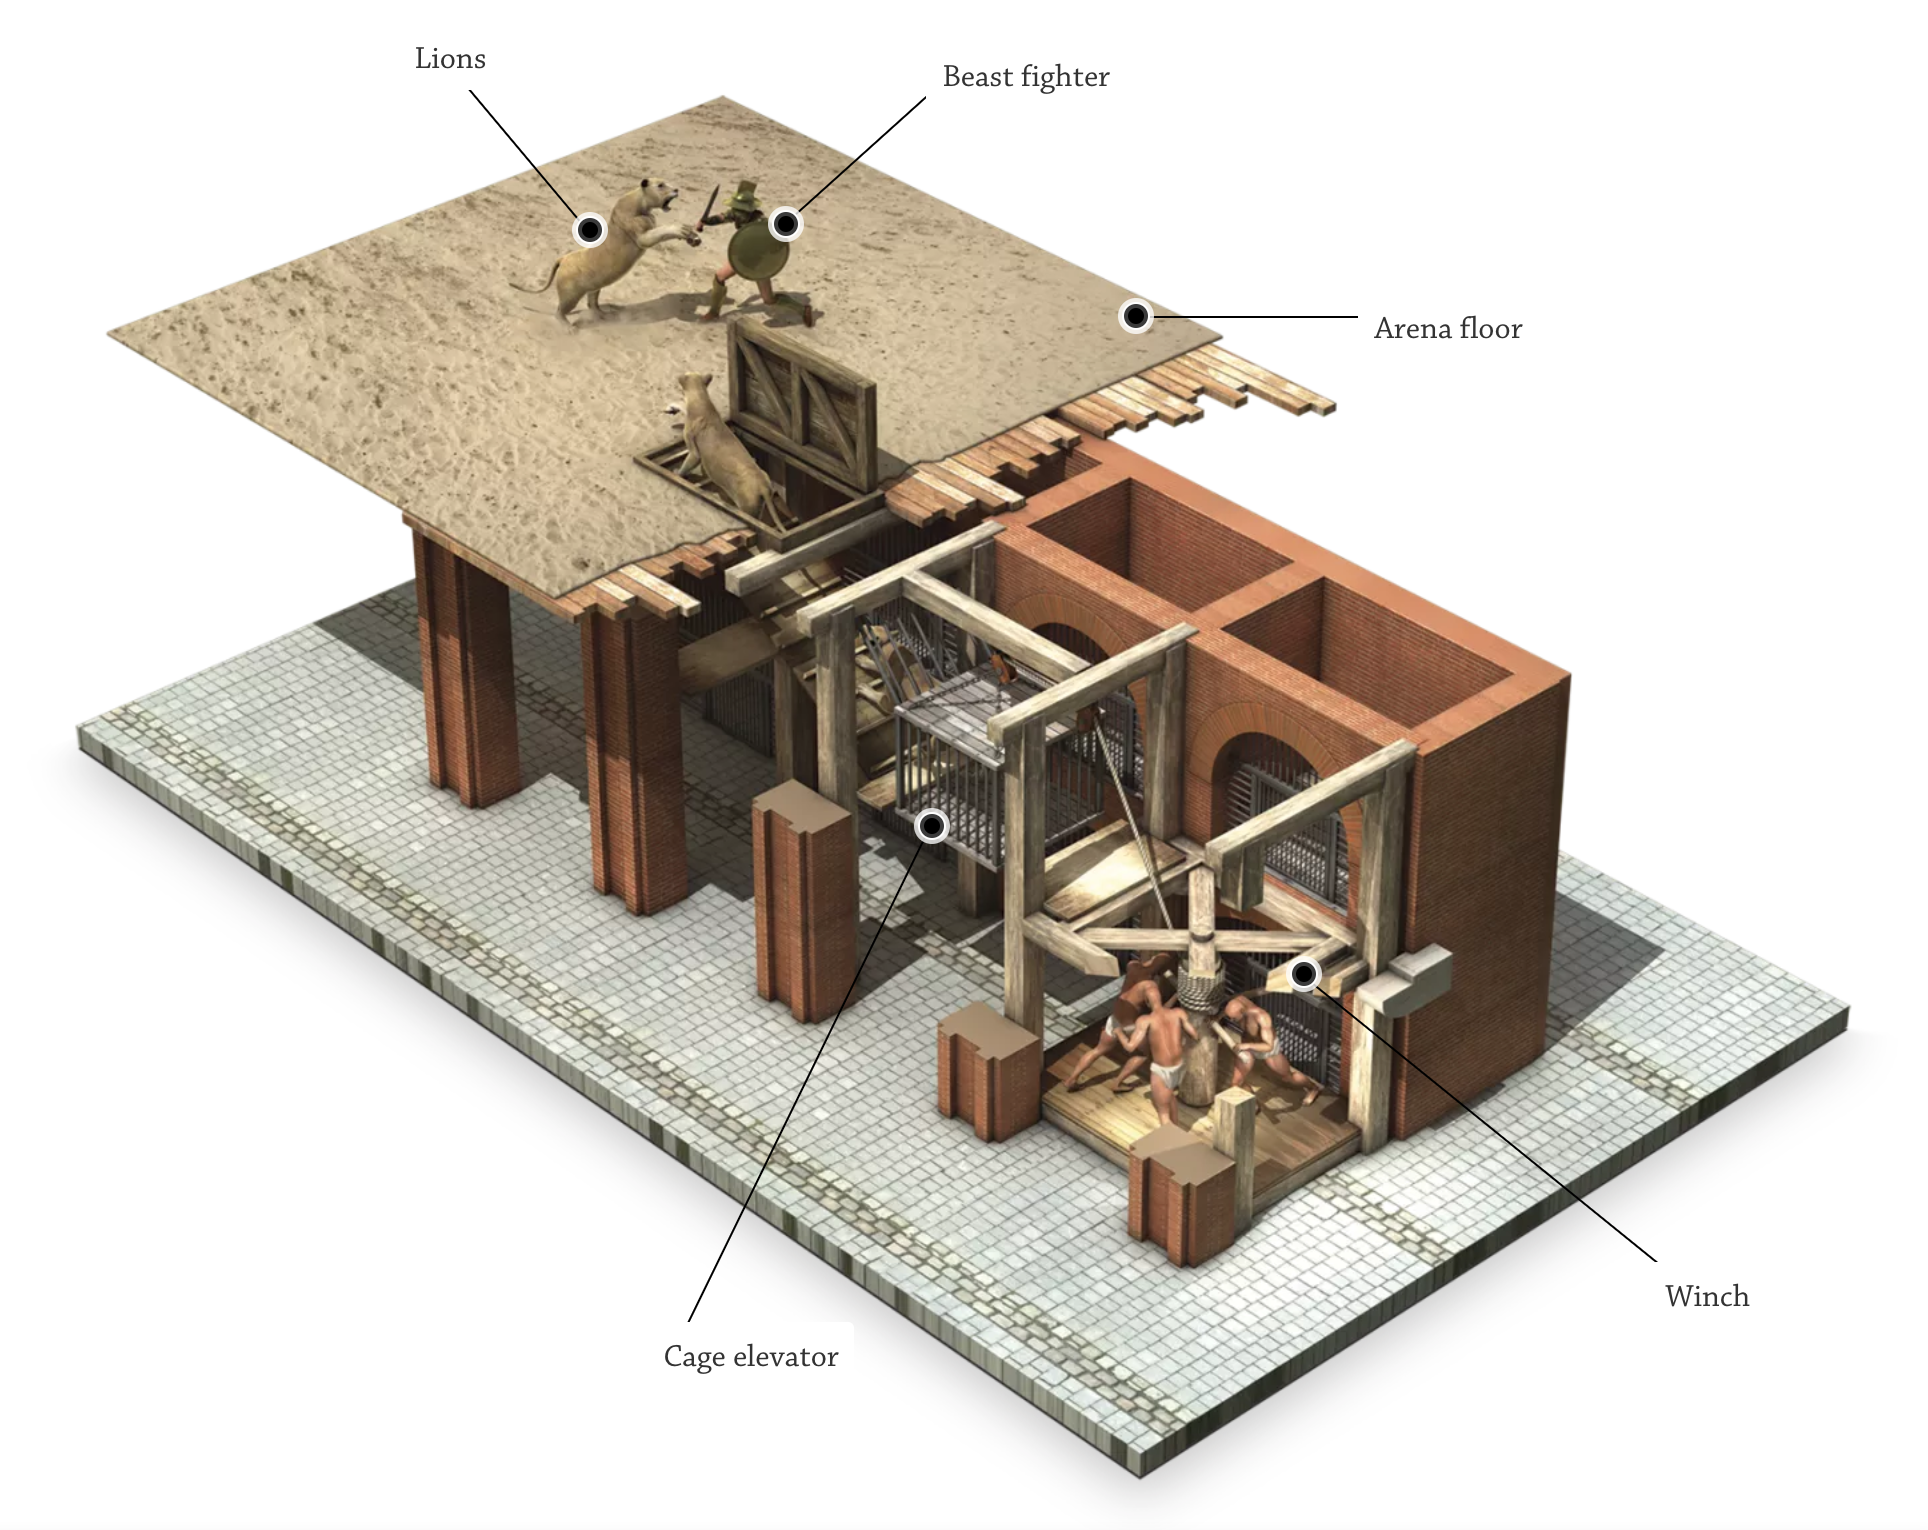 The elevator system is powered by eight men on two decks who turn a huge wooden shaft connected by a series of ropes, pulleys and lead weights to a wooden cage capable of holding more than 600 pounds. The manpower slowly raises the cage to the arena floor where the trap door opens.